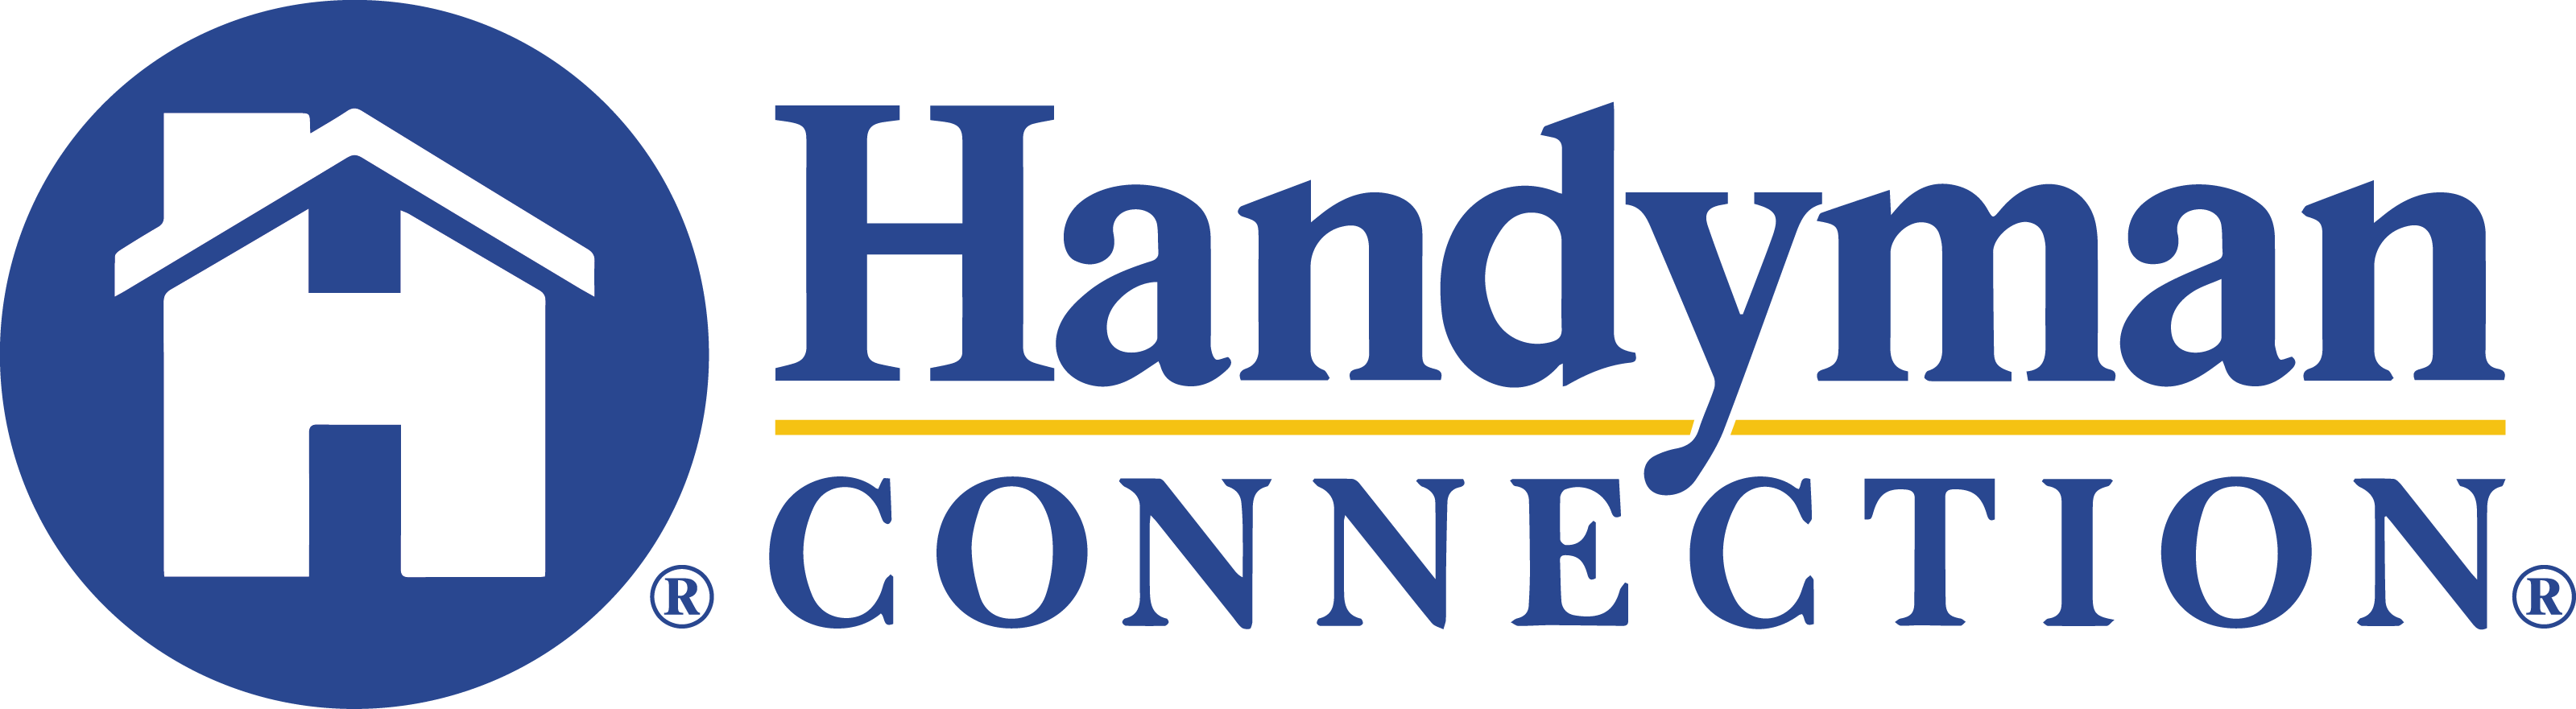 Handyman Connection of Winchester, VA